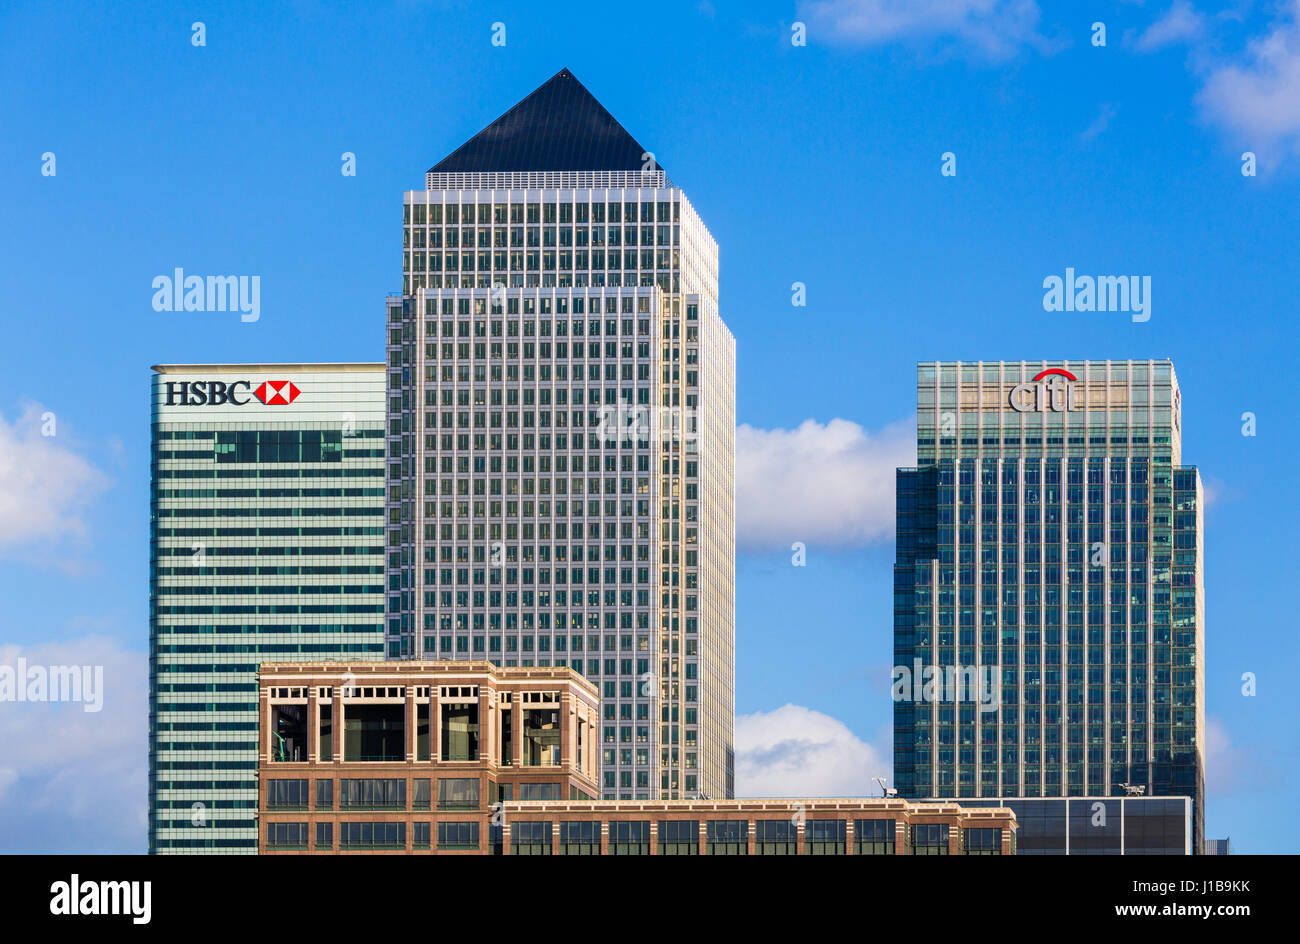 Canary Wharf skyline - Docklands, London, England - the financial district of the UK Stock Photo